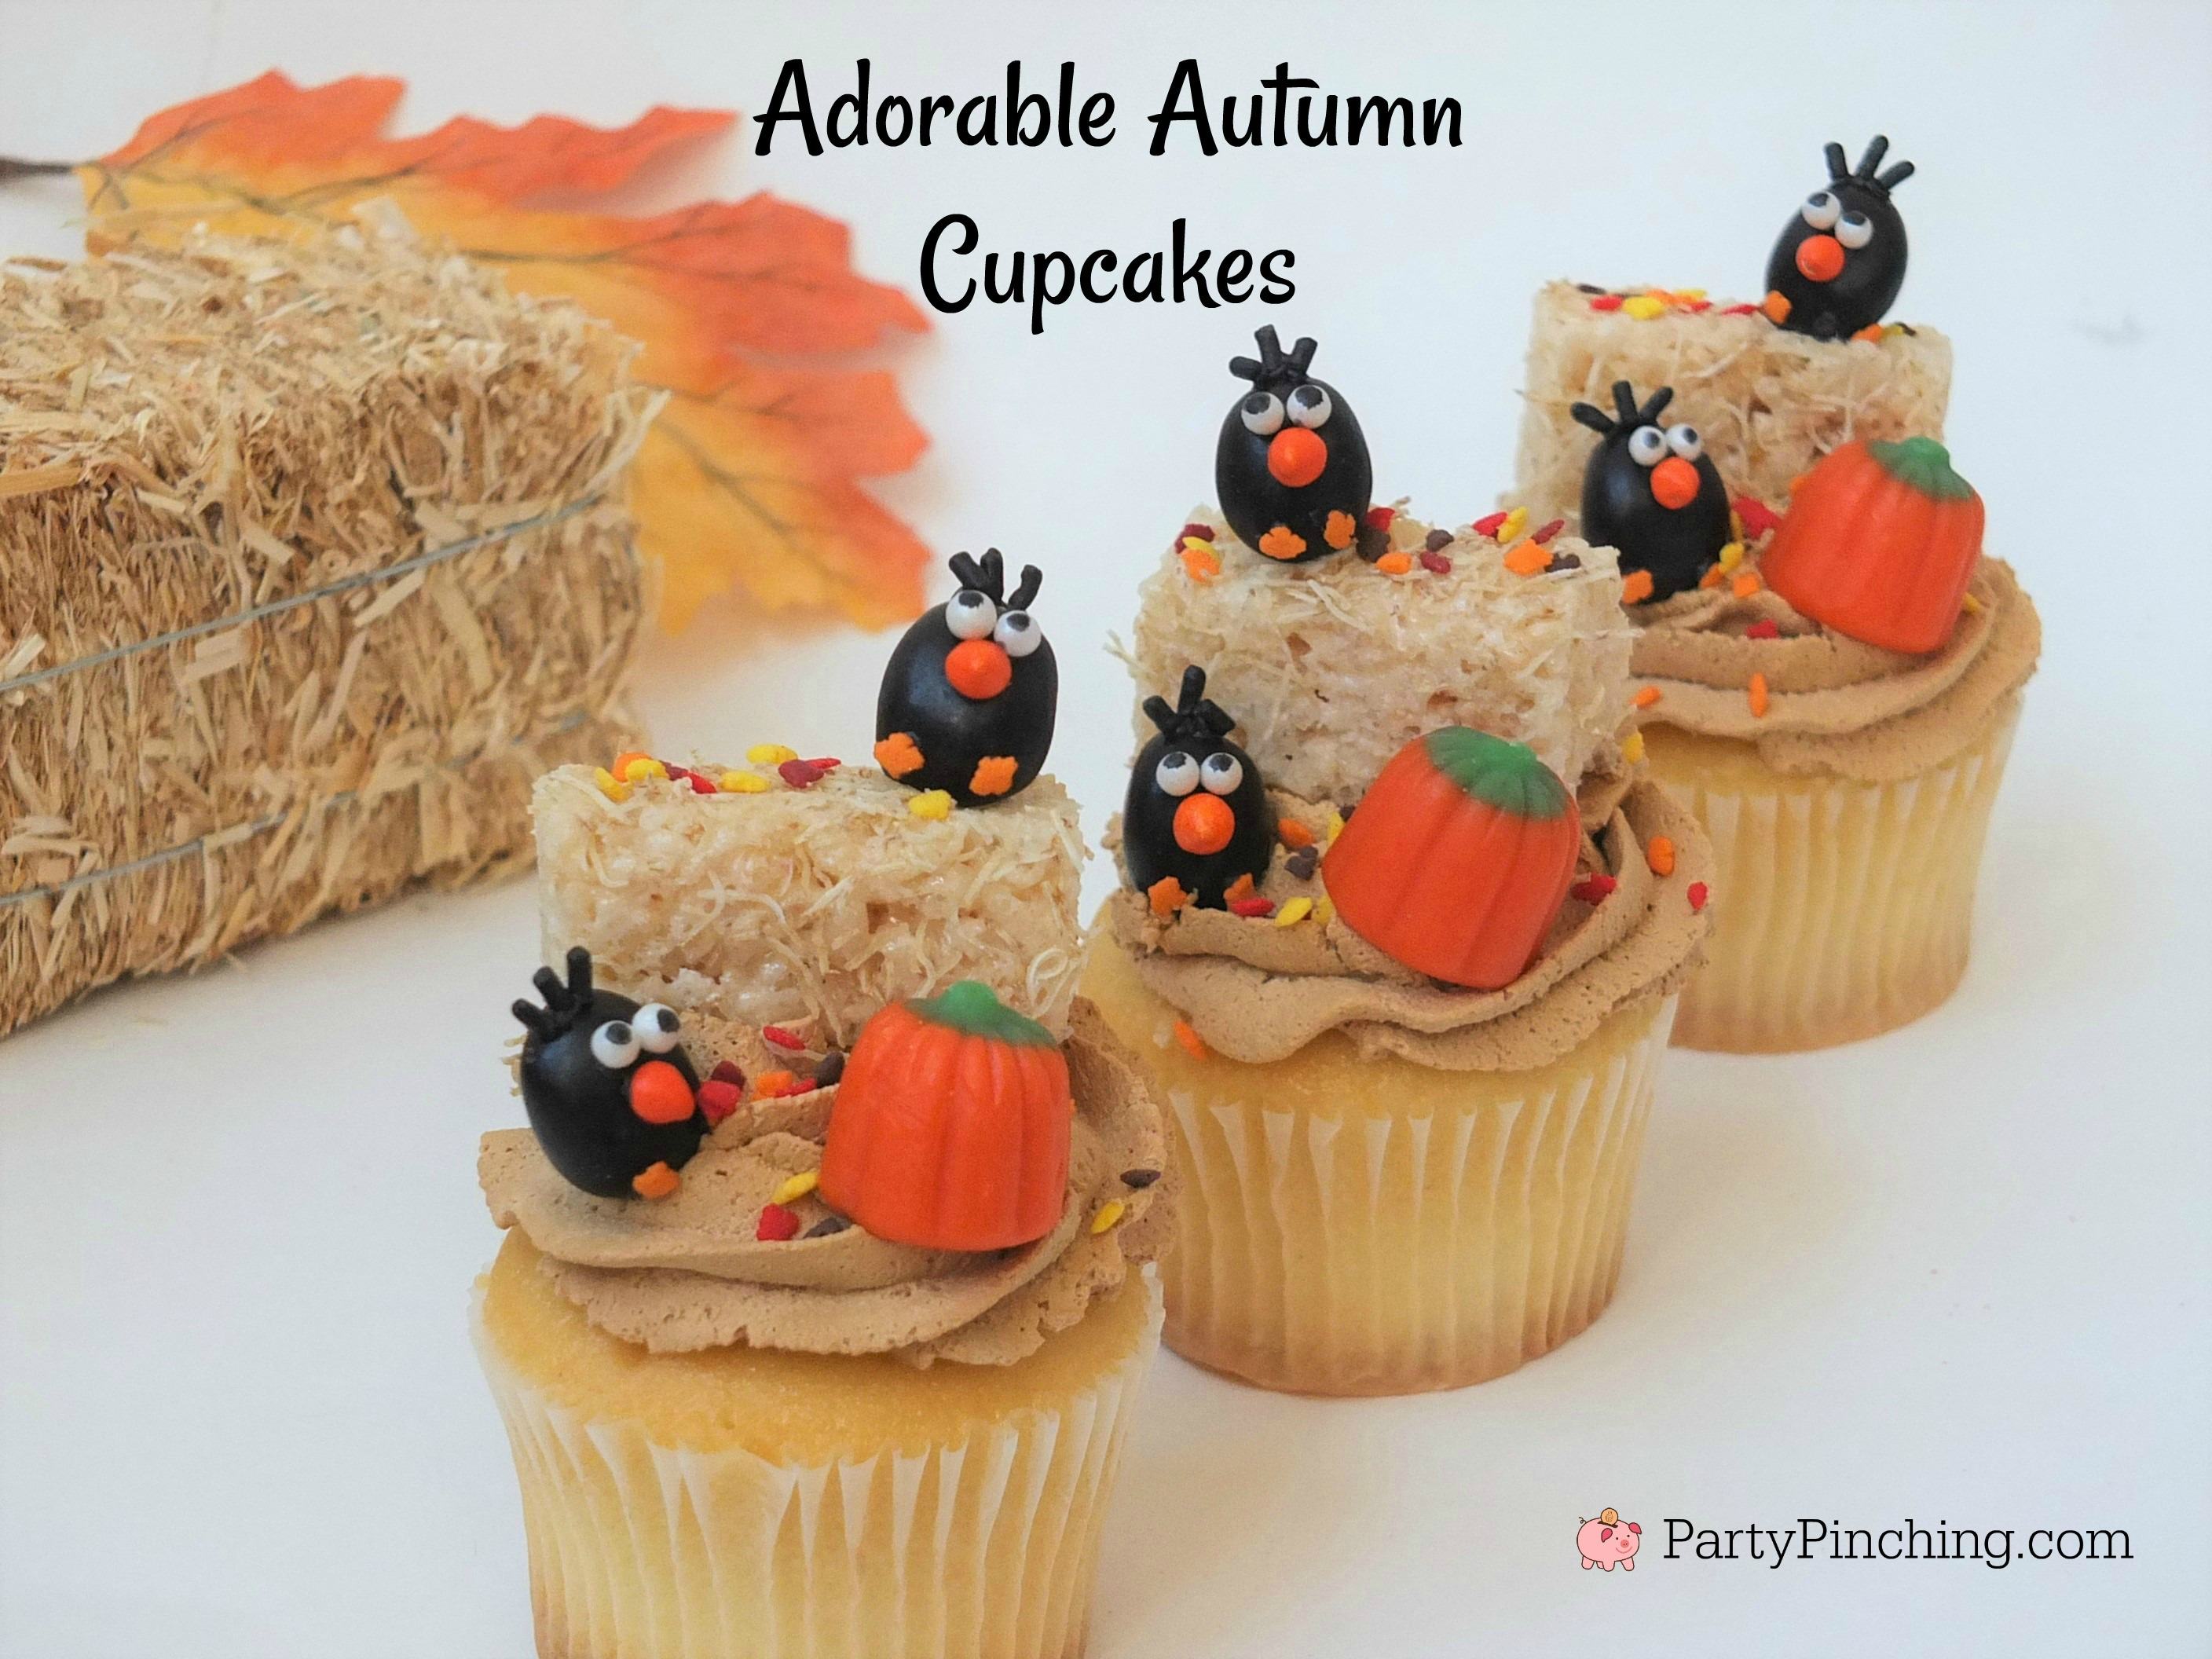 crow cupcakes, adorable autumn fall cupcakes, jelly bean crows, cute food, fun food for kids, hay bale cupcakes rice krispie haybales with leaf sprinkles, ask for whipped, caramel whipped icing frosting